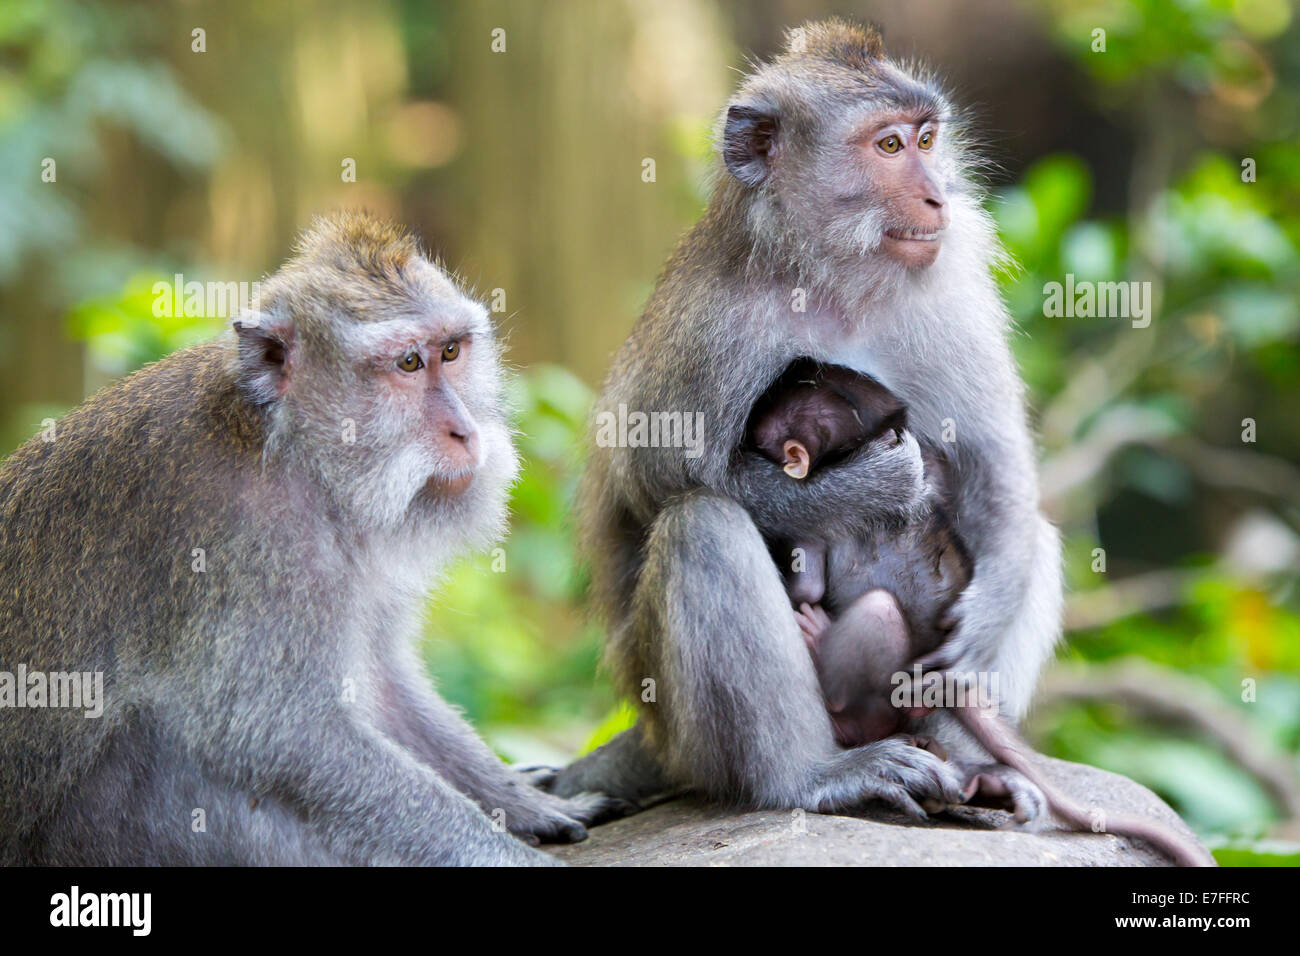 A protective mother protects her baby in Monkey Forest, Ubud, Bali, Indonesia. - Stock Image